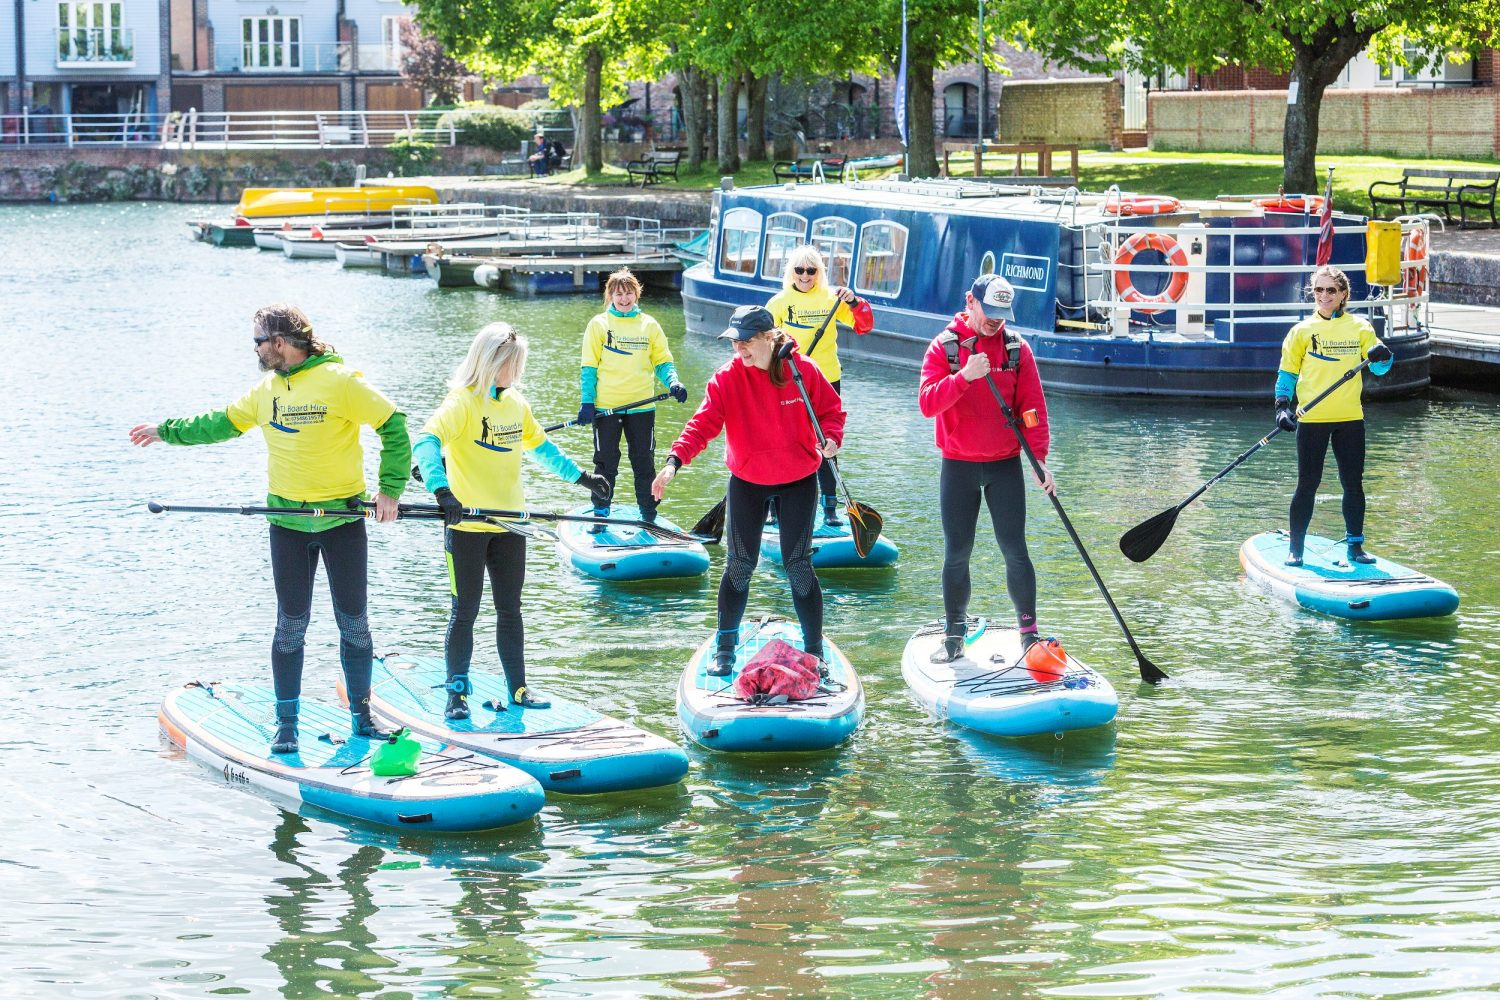 Paddleboarding lessons on Chichester Canal